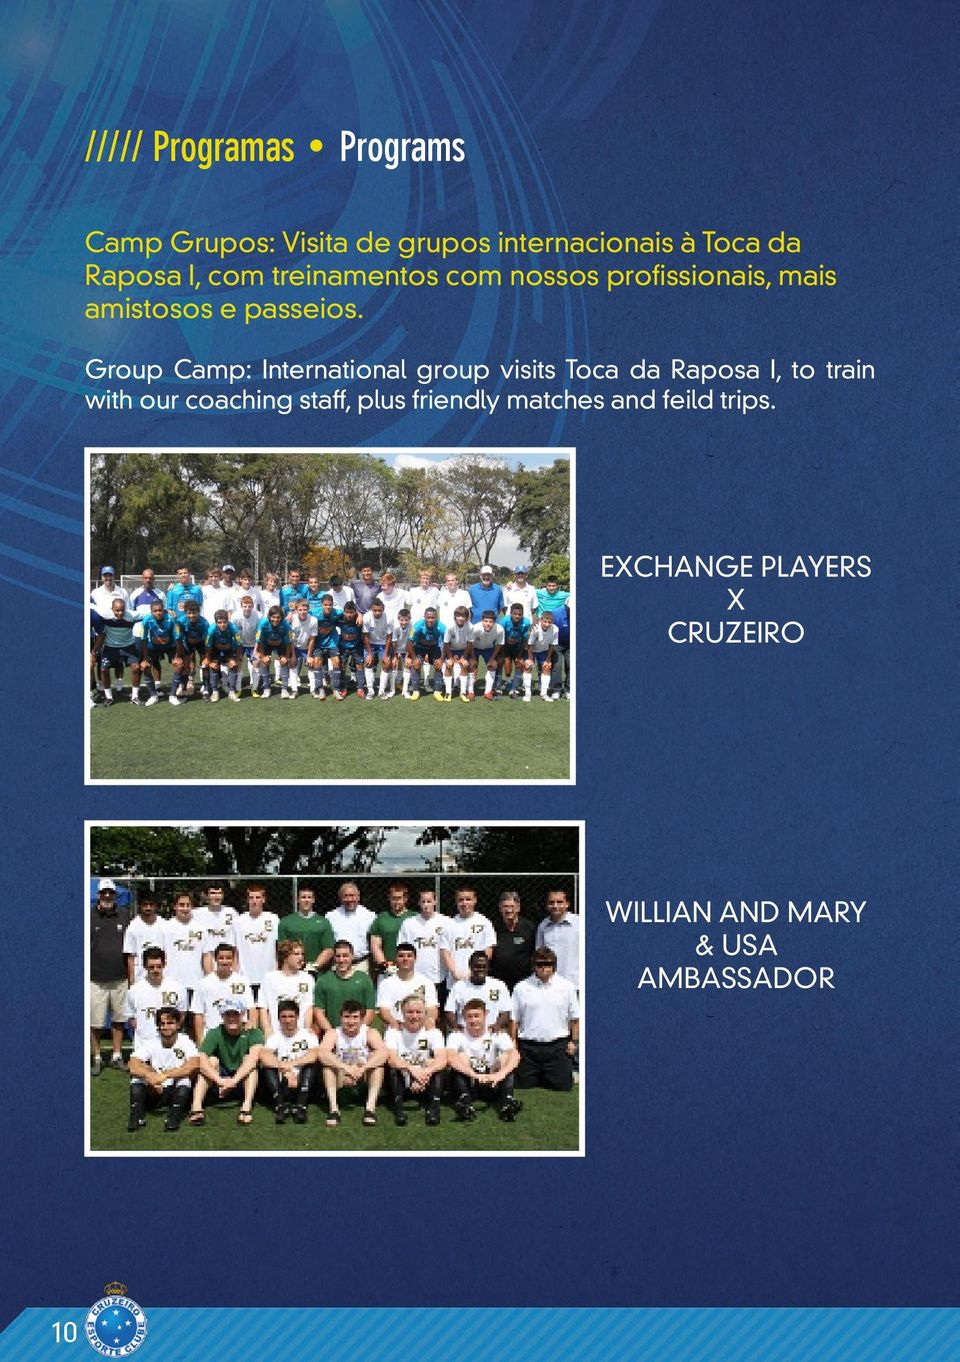 Group Camp: International group visits Toca da Raposa I, to train with our coaching